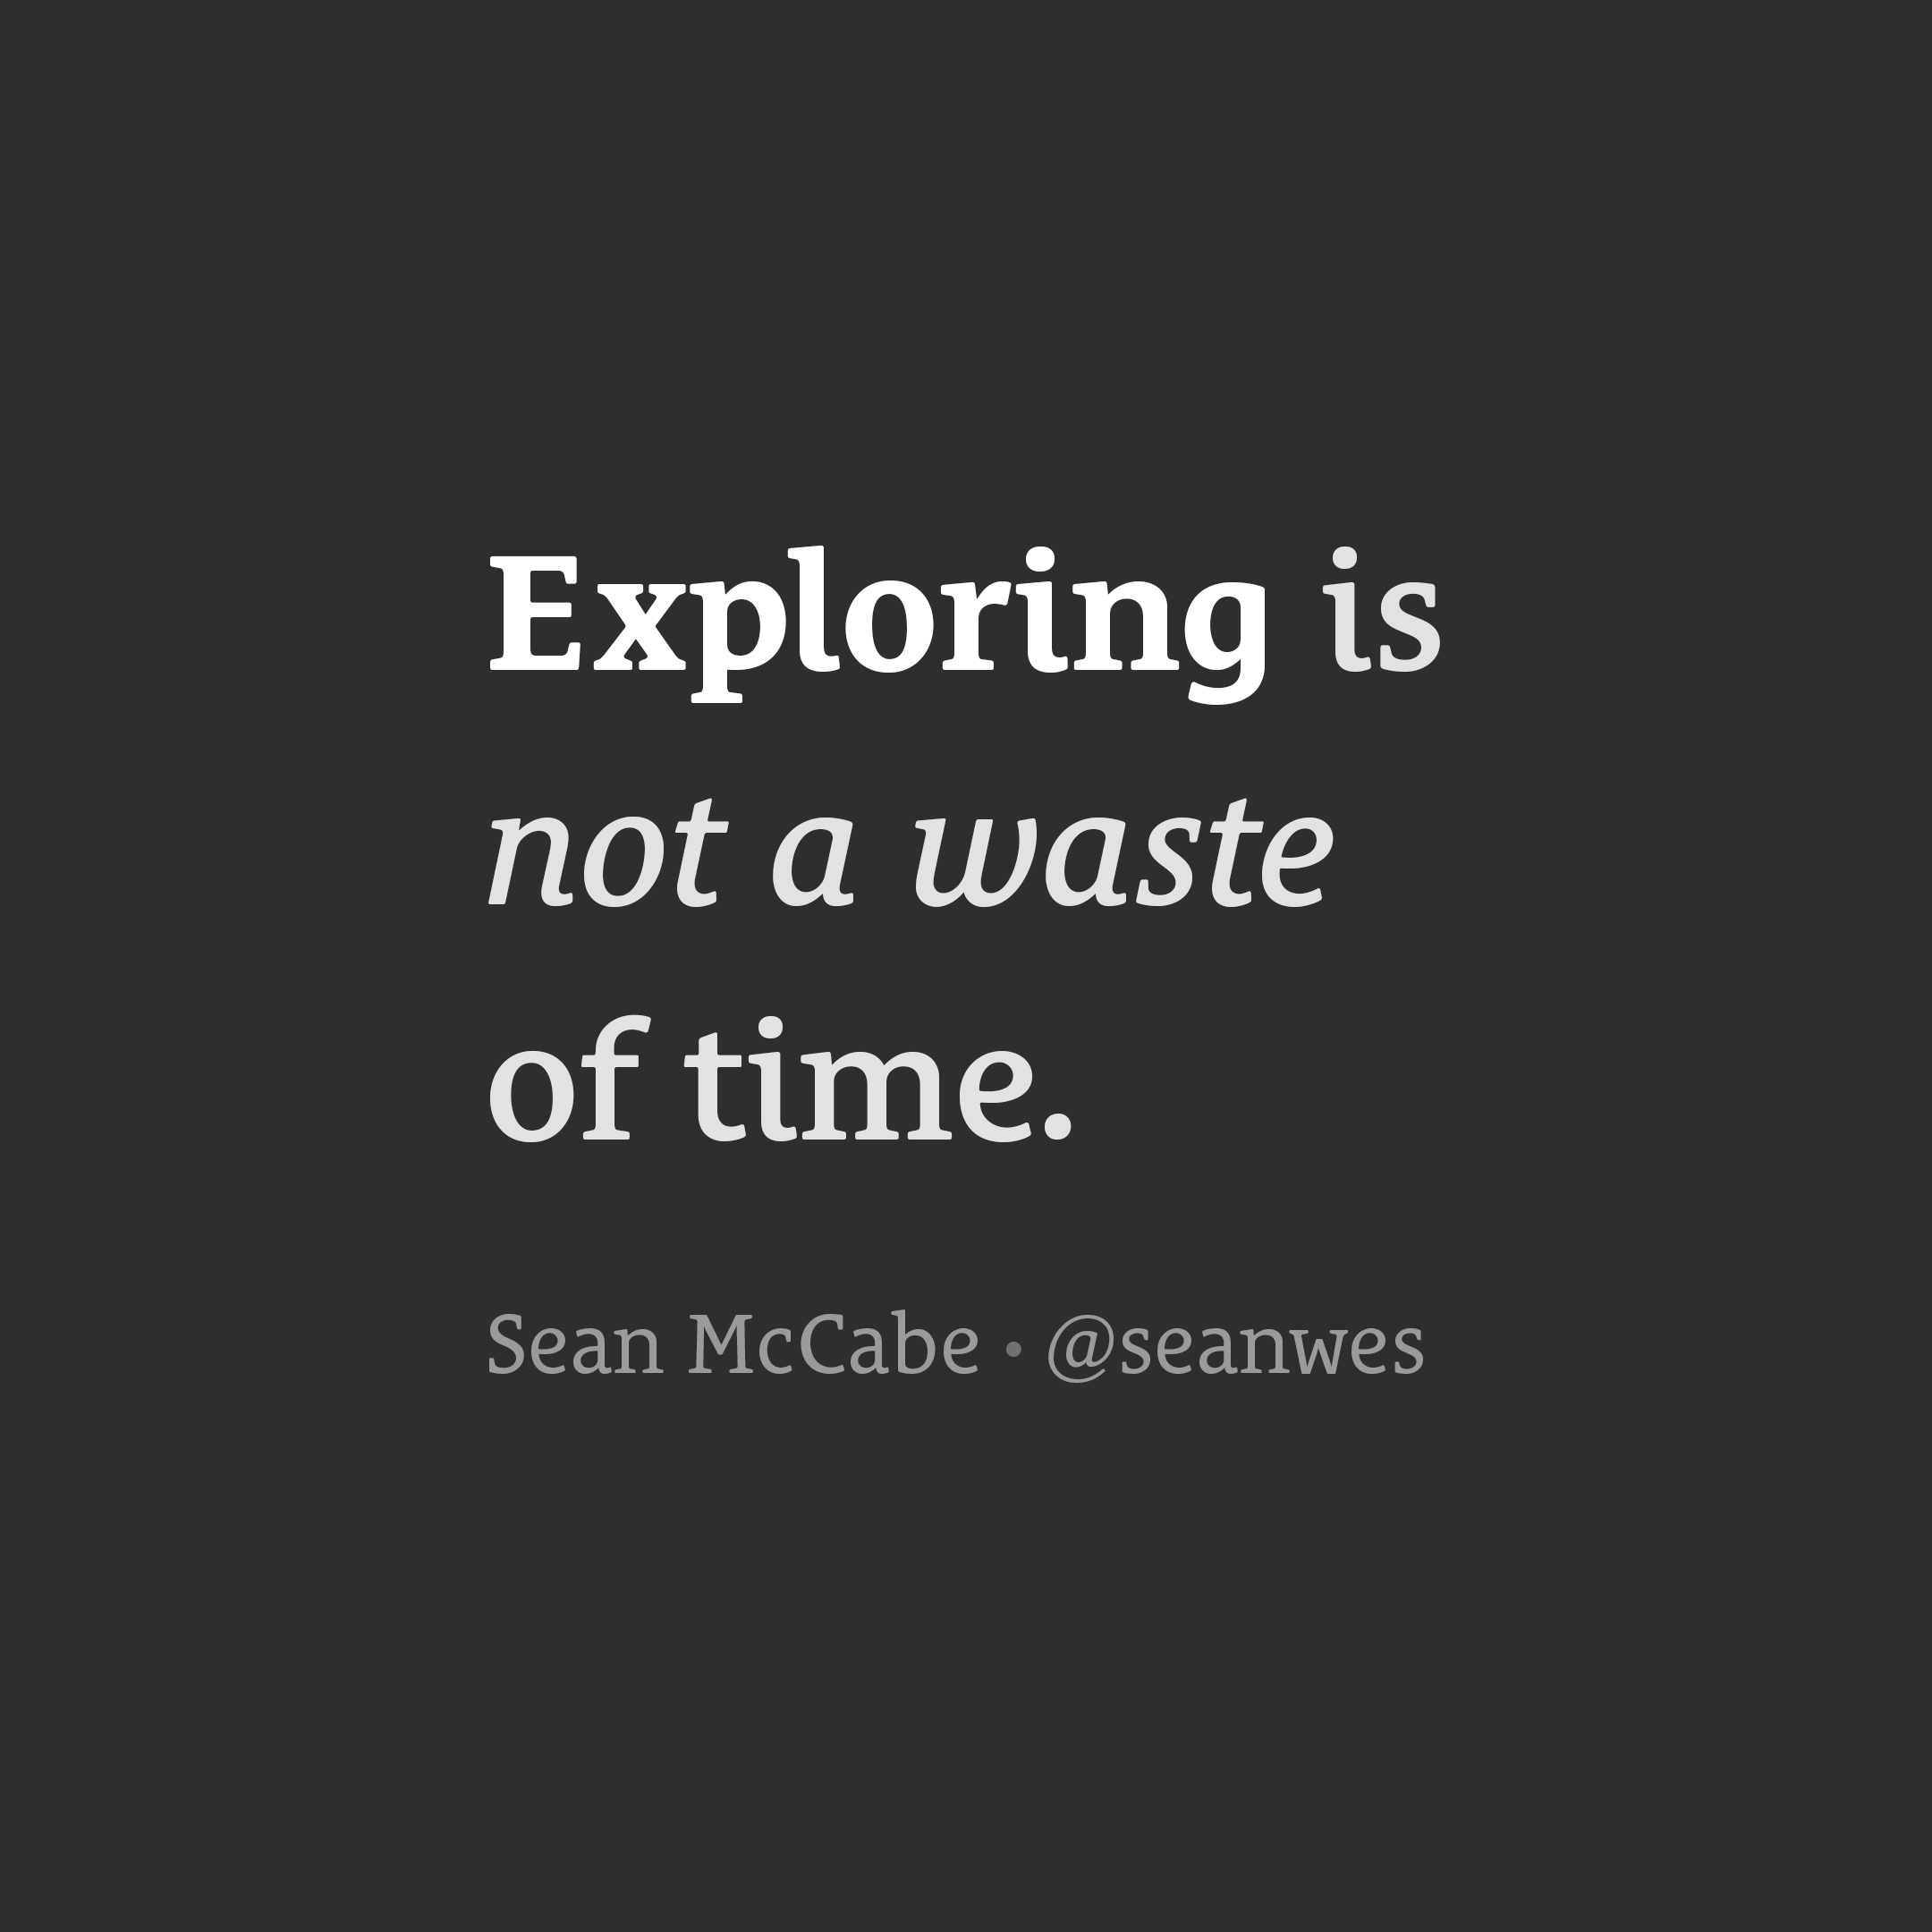 Exploring is not a waste of time.